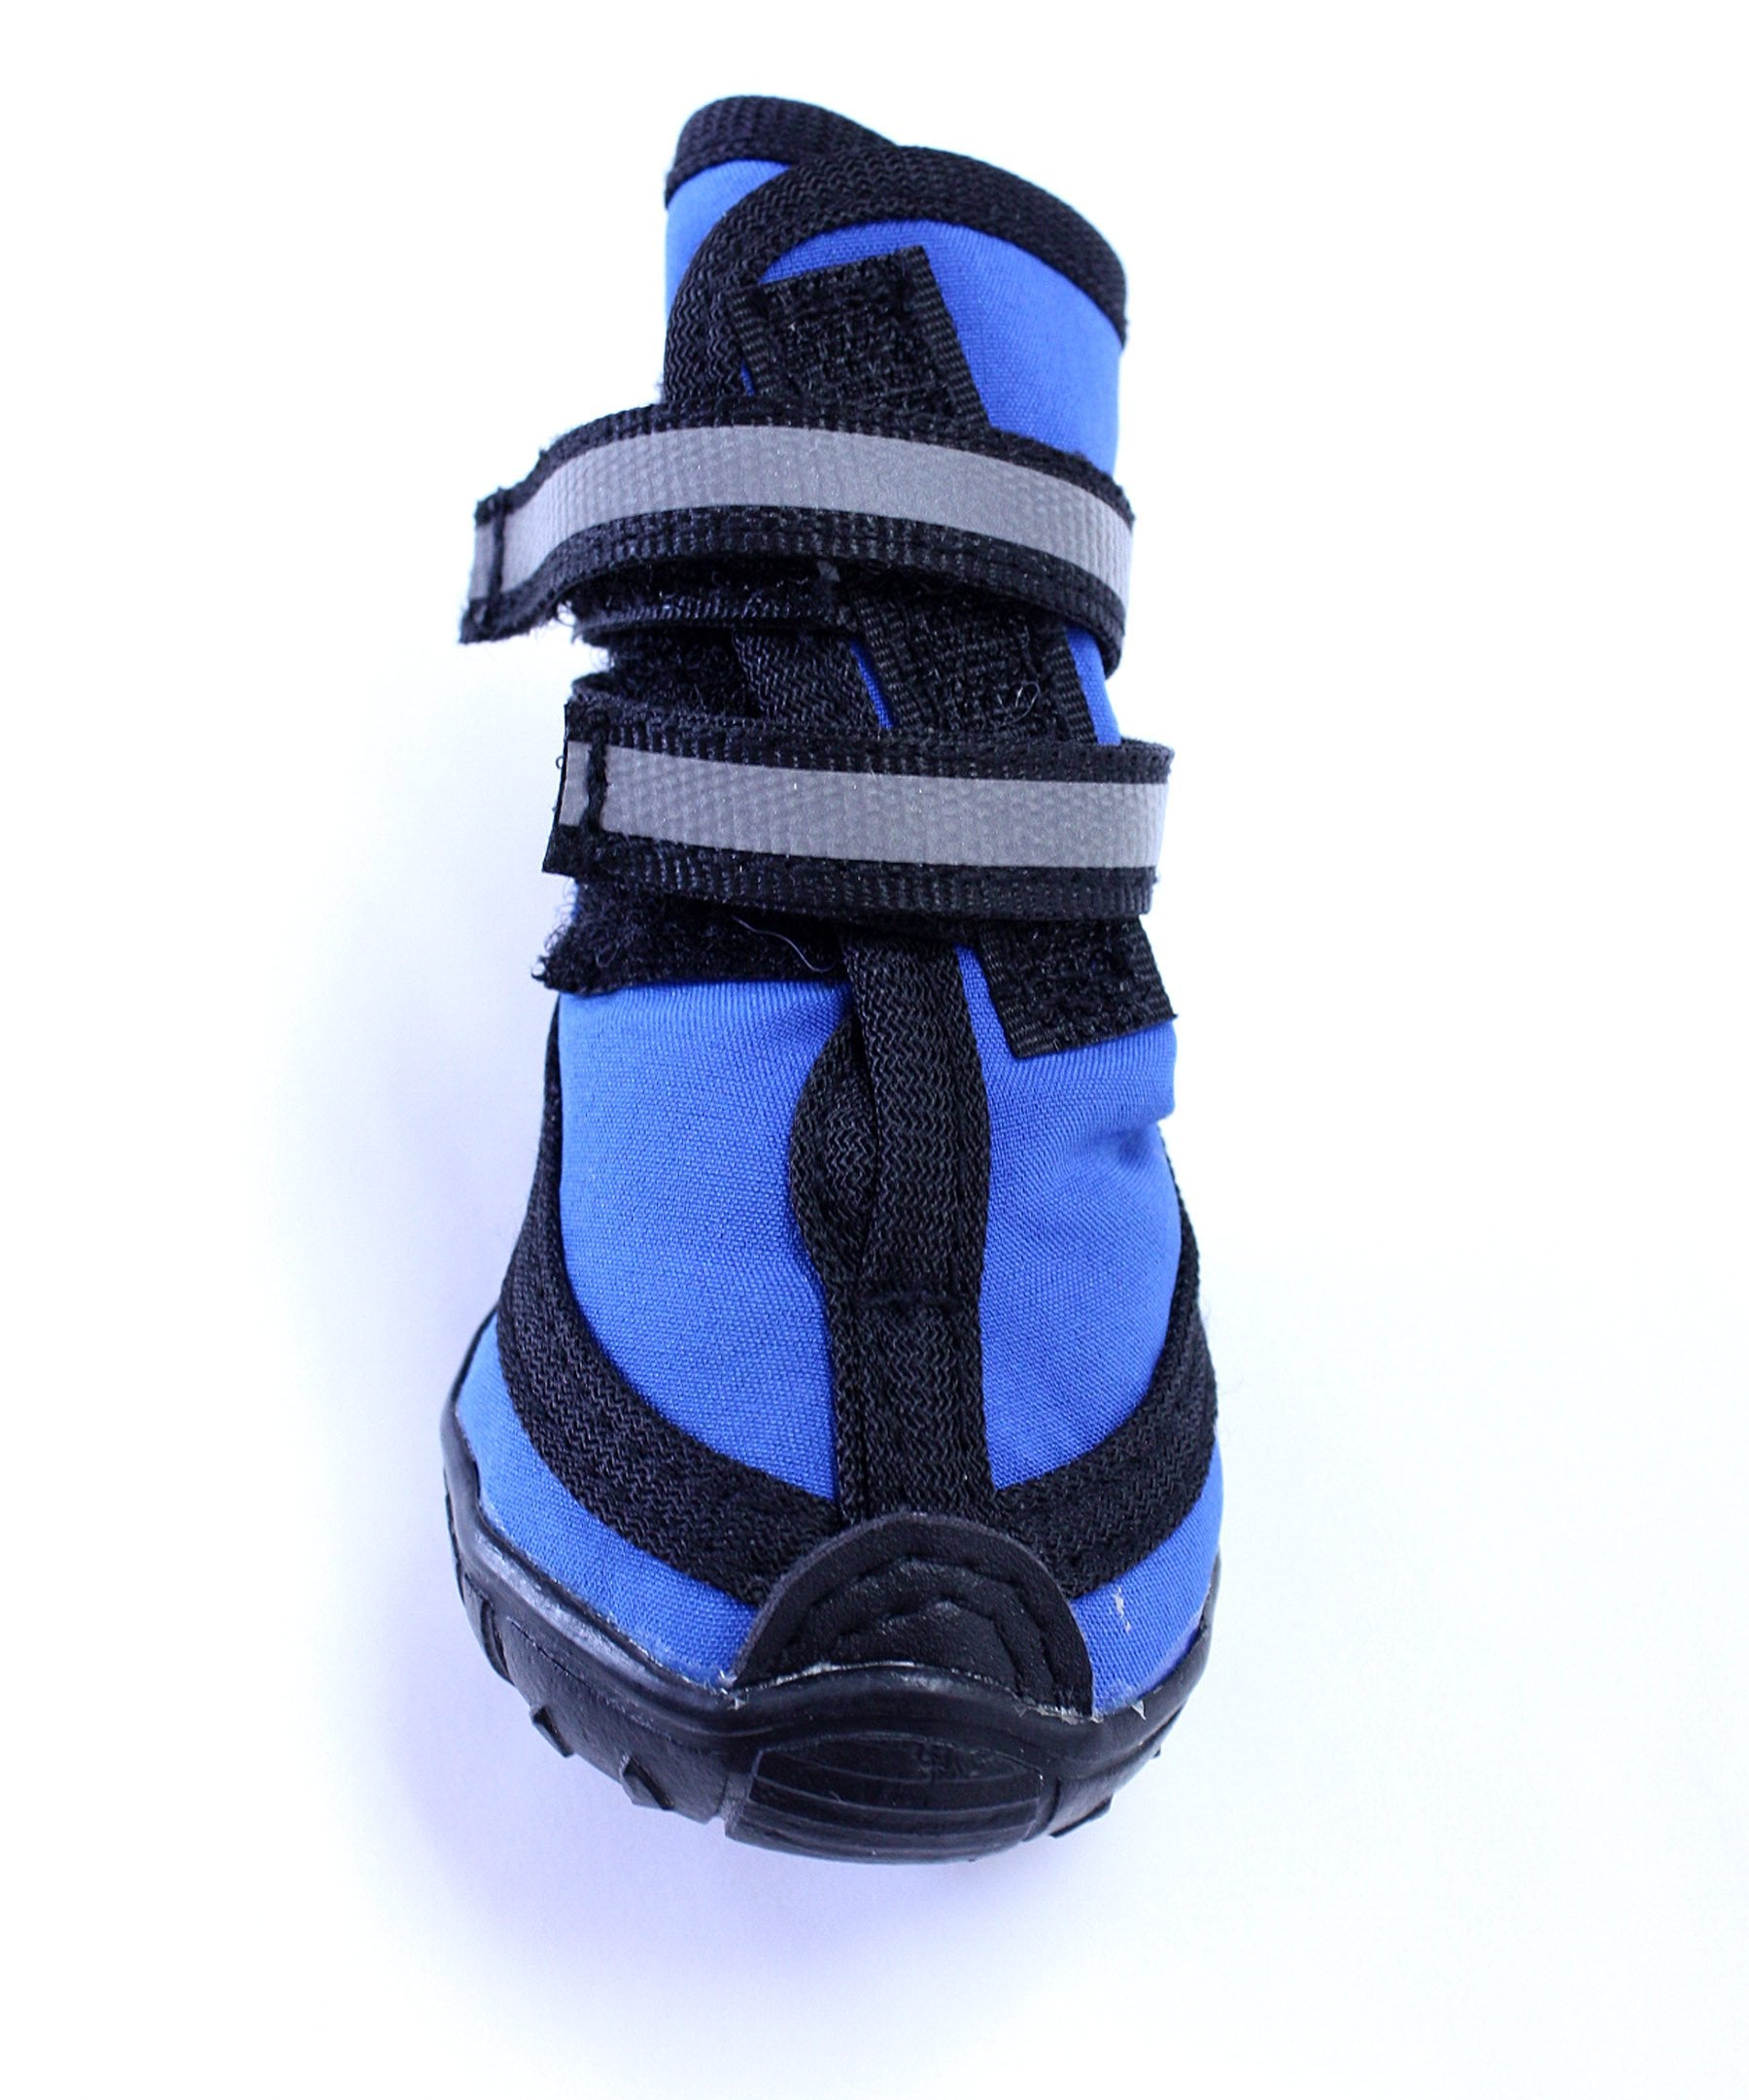 Performance Dog Boots  S - M- L